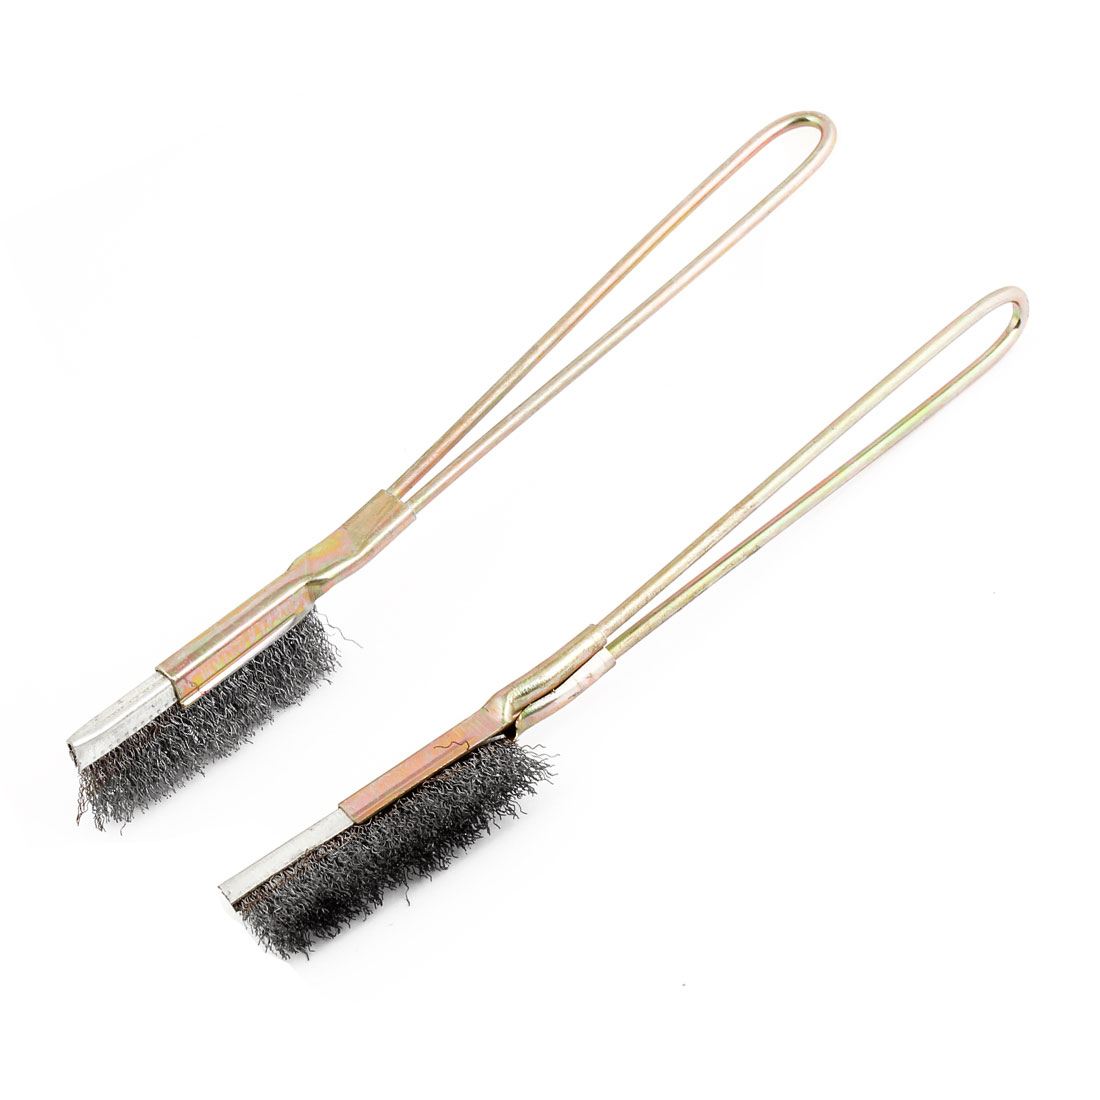 2 Pcs Bronze Tone Stainless Steel Handle Cleaning Brushes for Car Engine